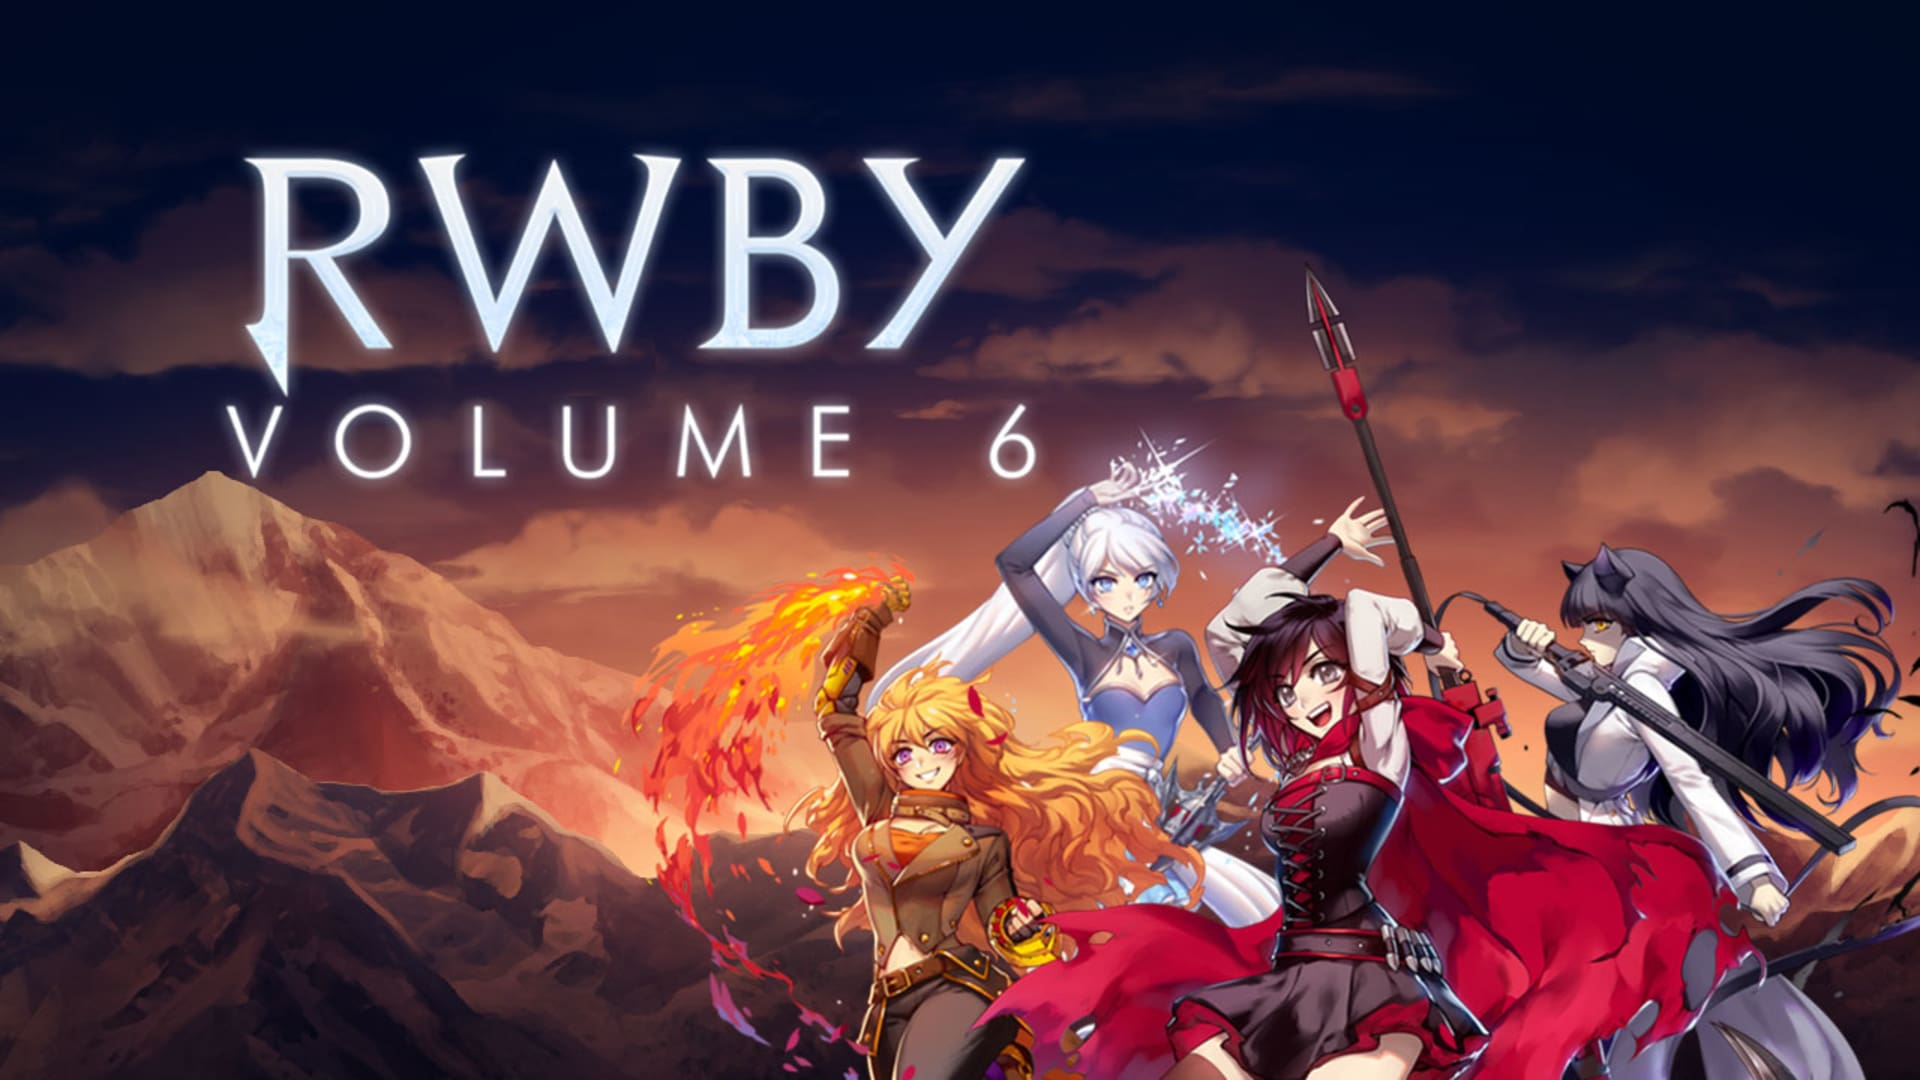 Series RWBY - Rooster Teeth